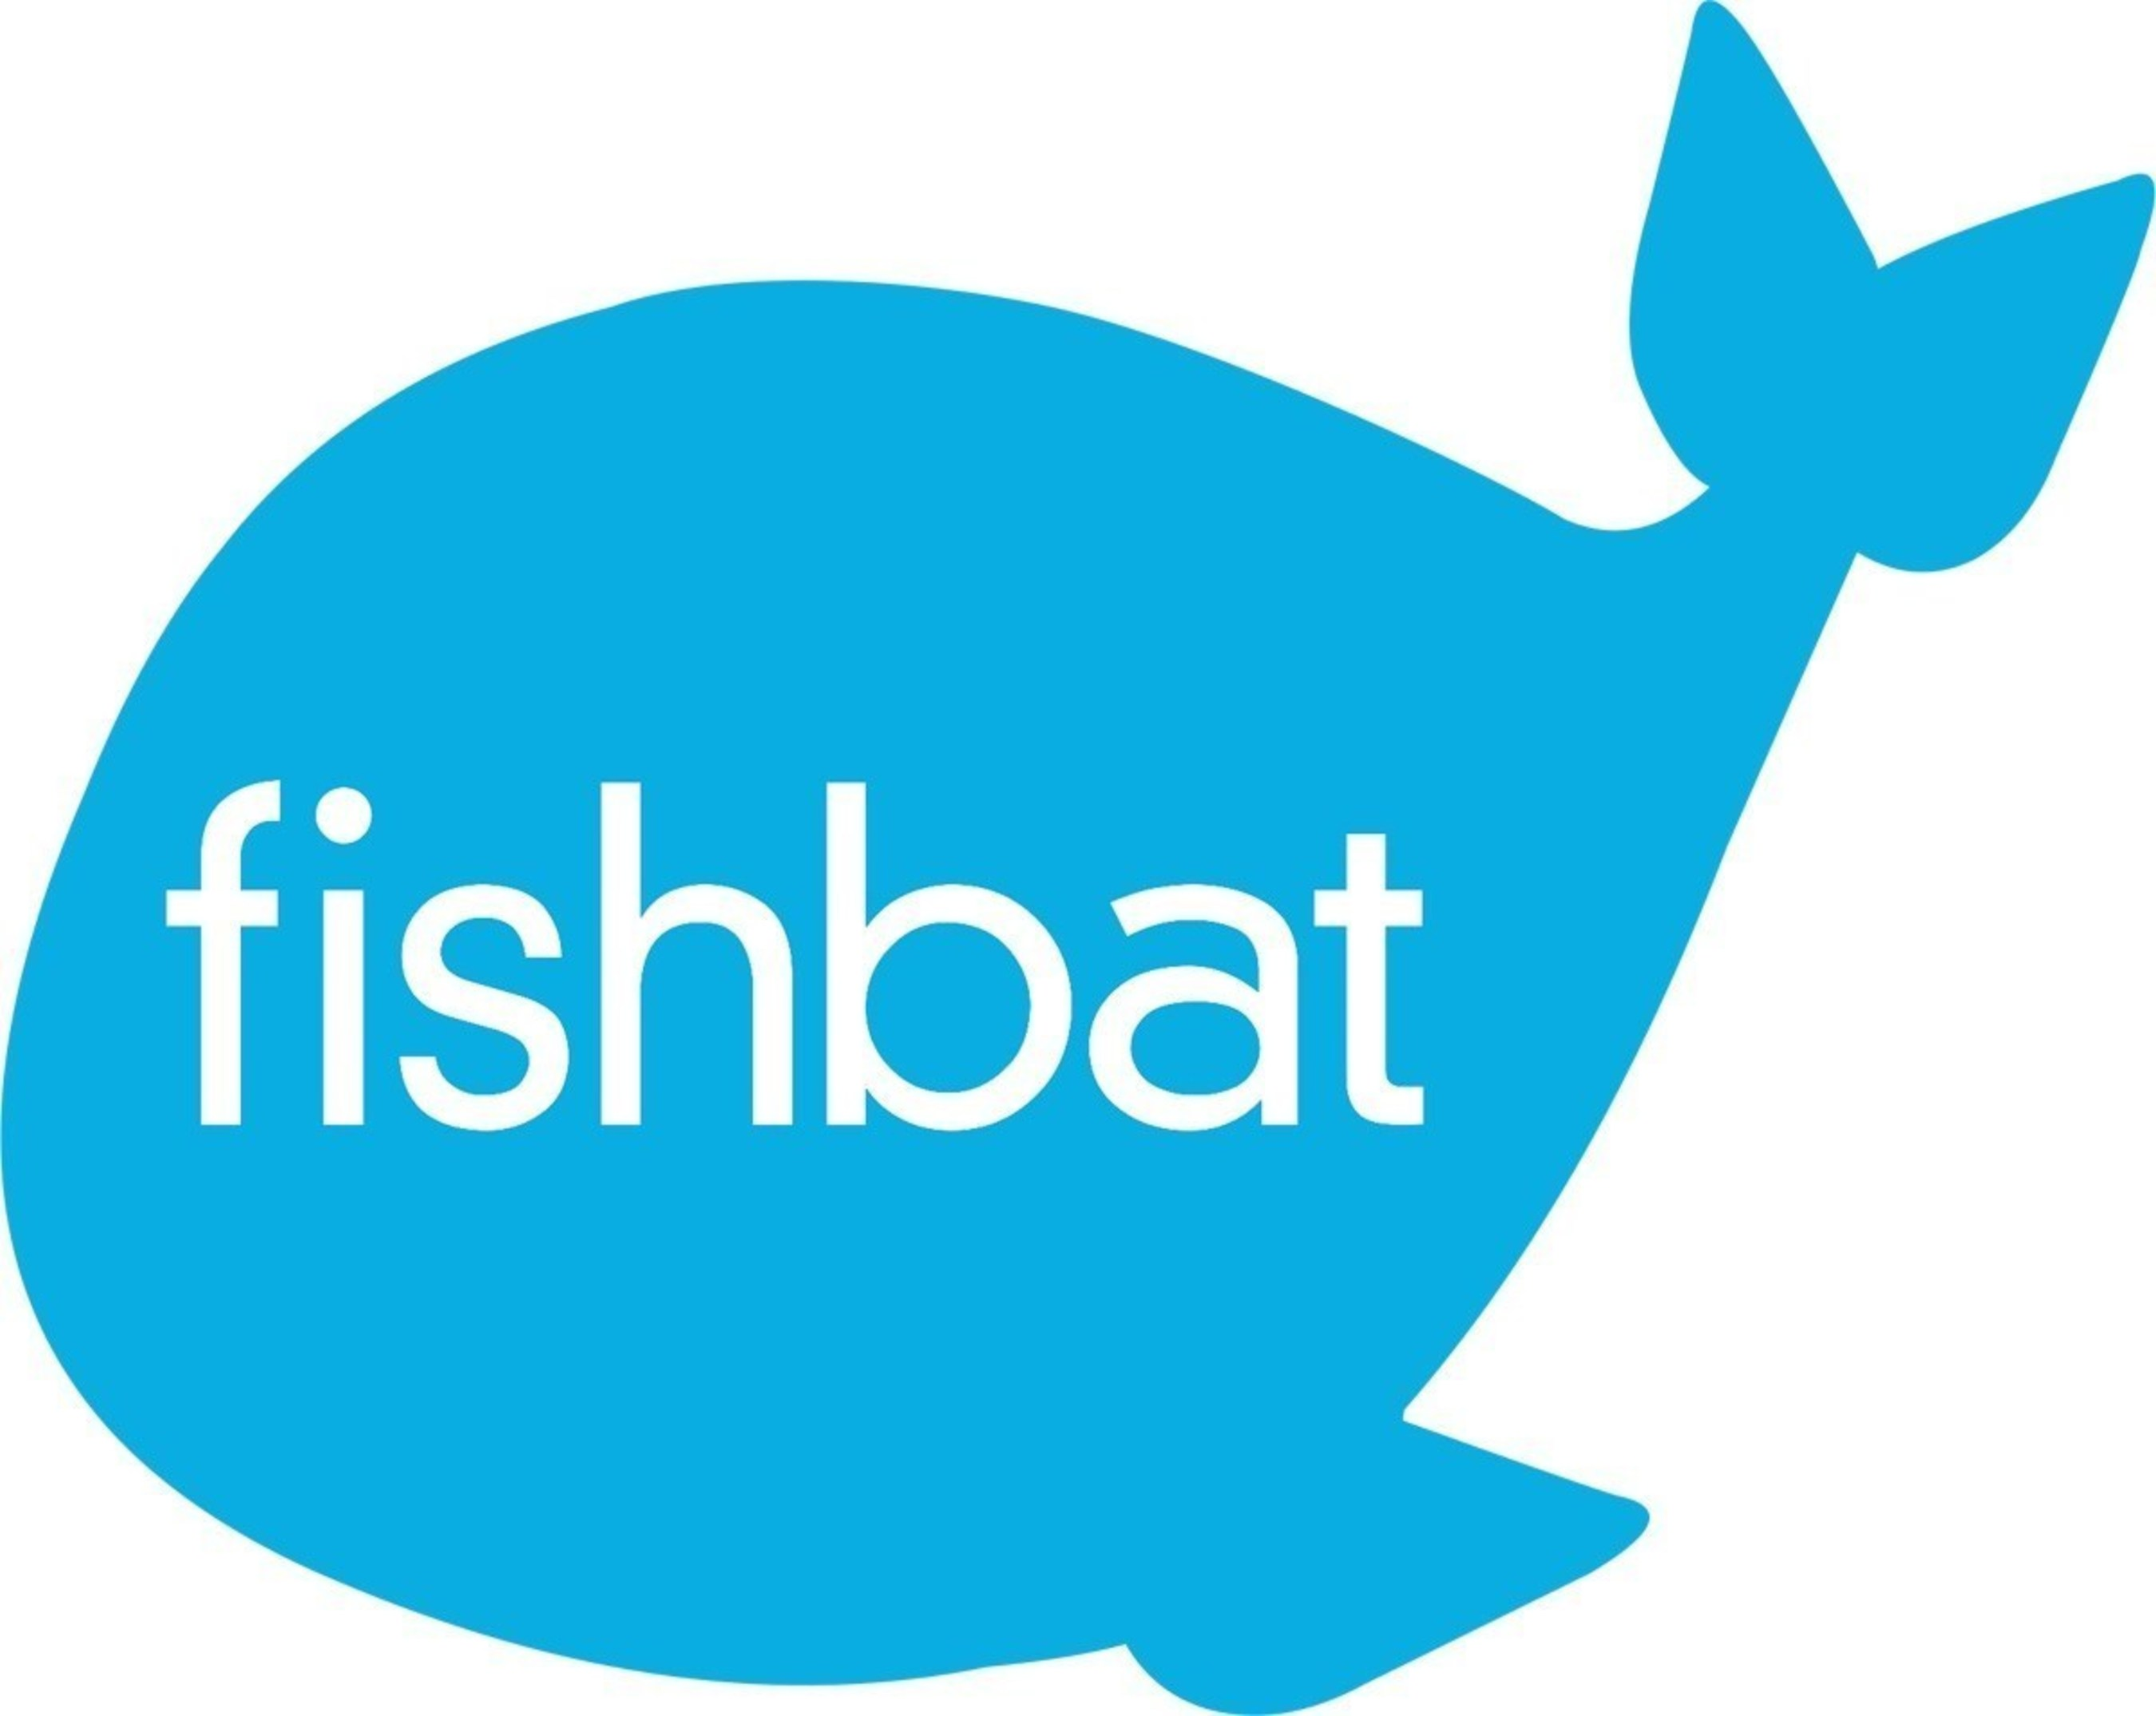 fishbat CEO Clay Darrohn Reveals 5 Secrets for Creating Effective Twitter Hashtags